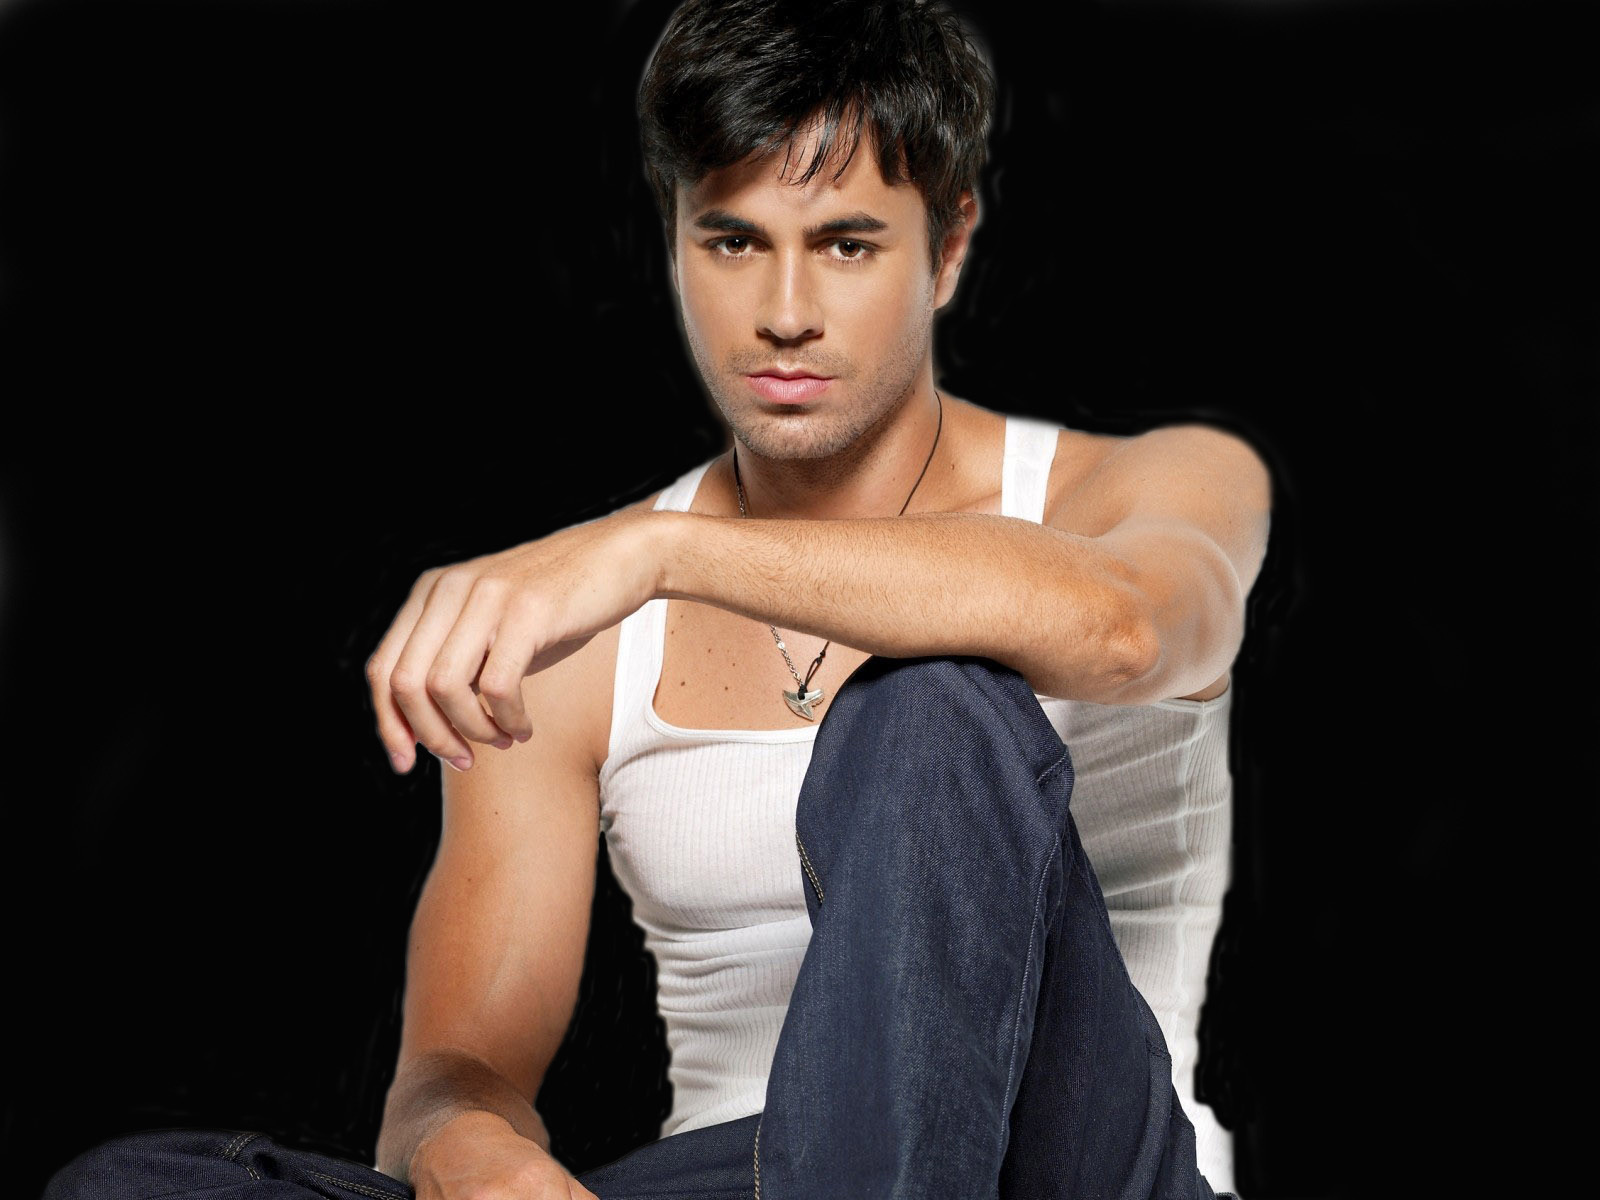 Enrique Iglesias - enrique-iglesias wallpaper